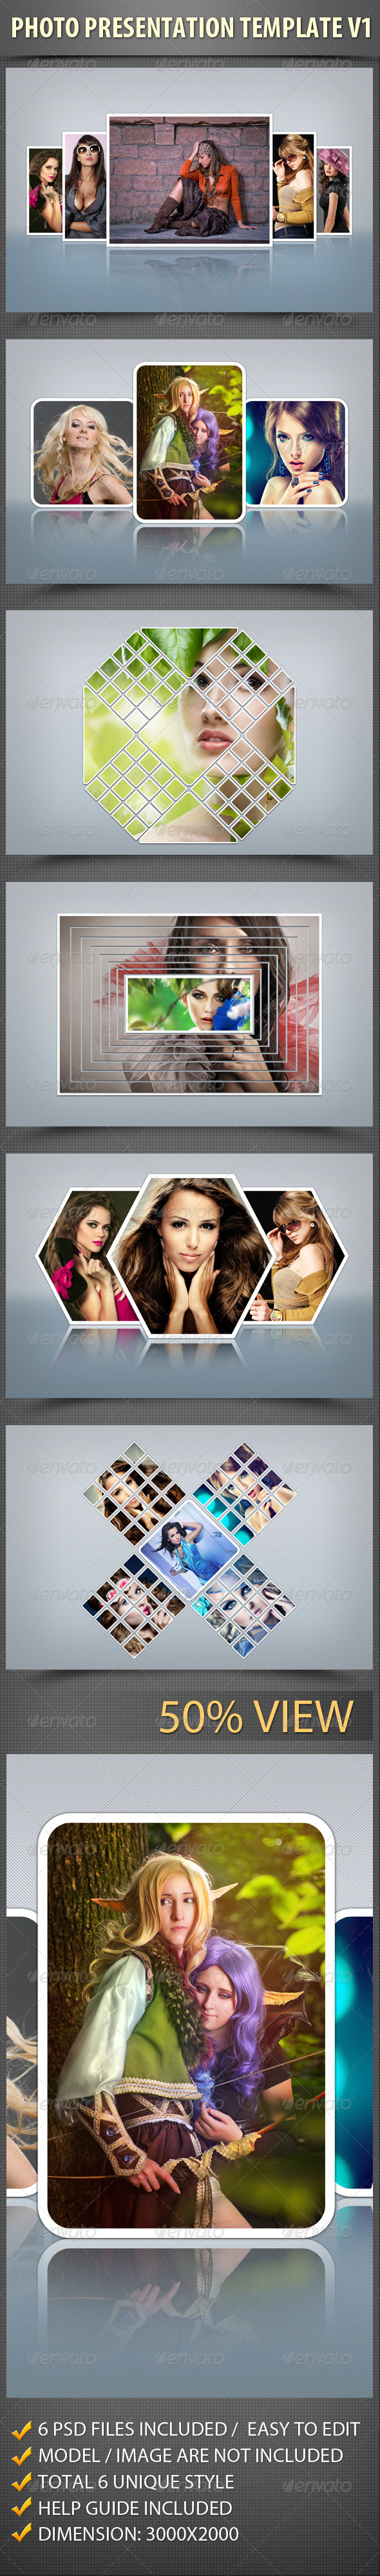 GraphicRiver Photo Presentation Template V1 6466431